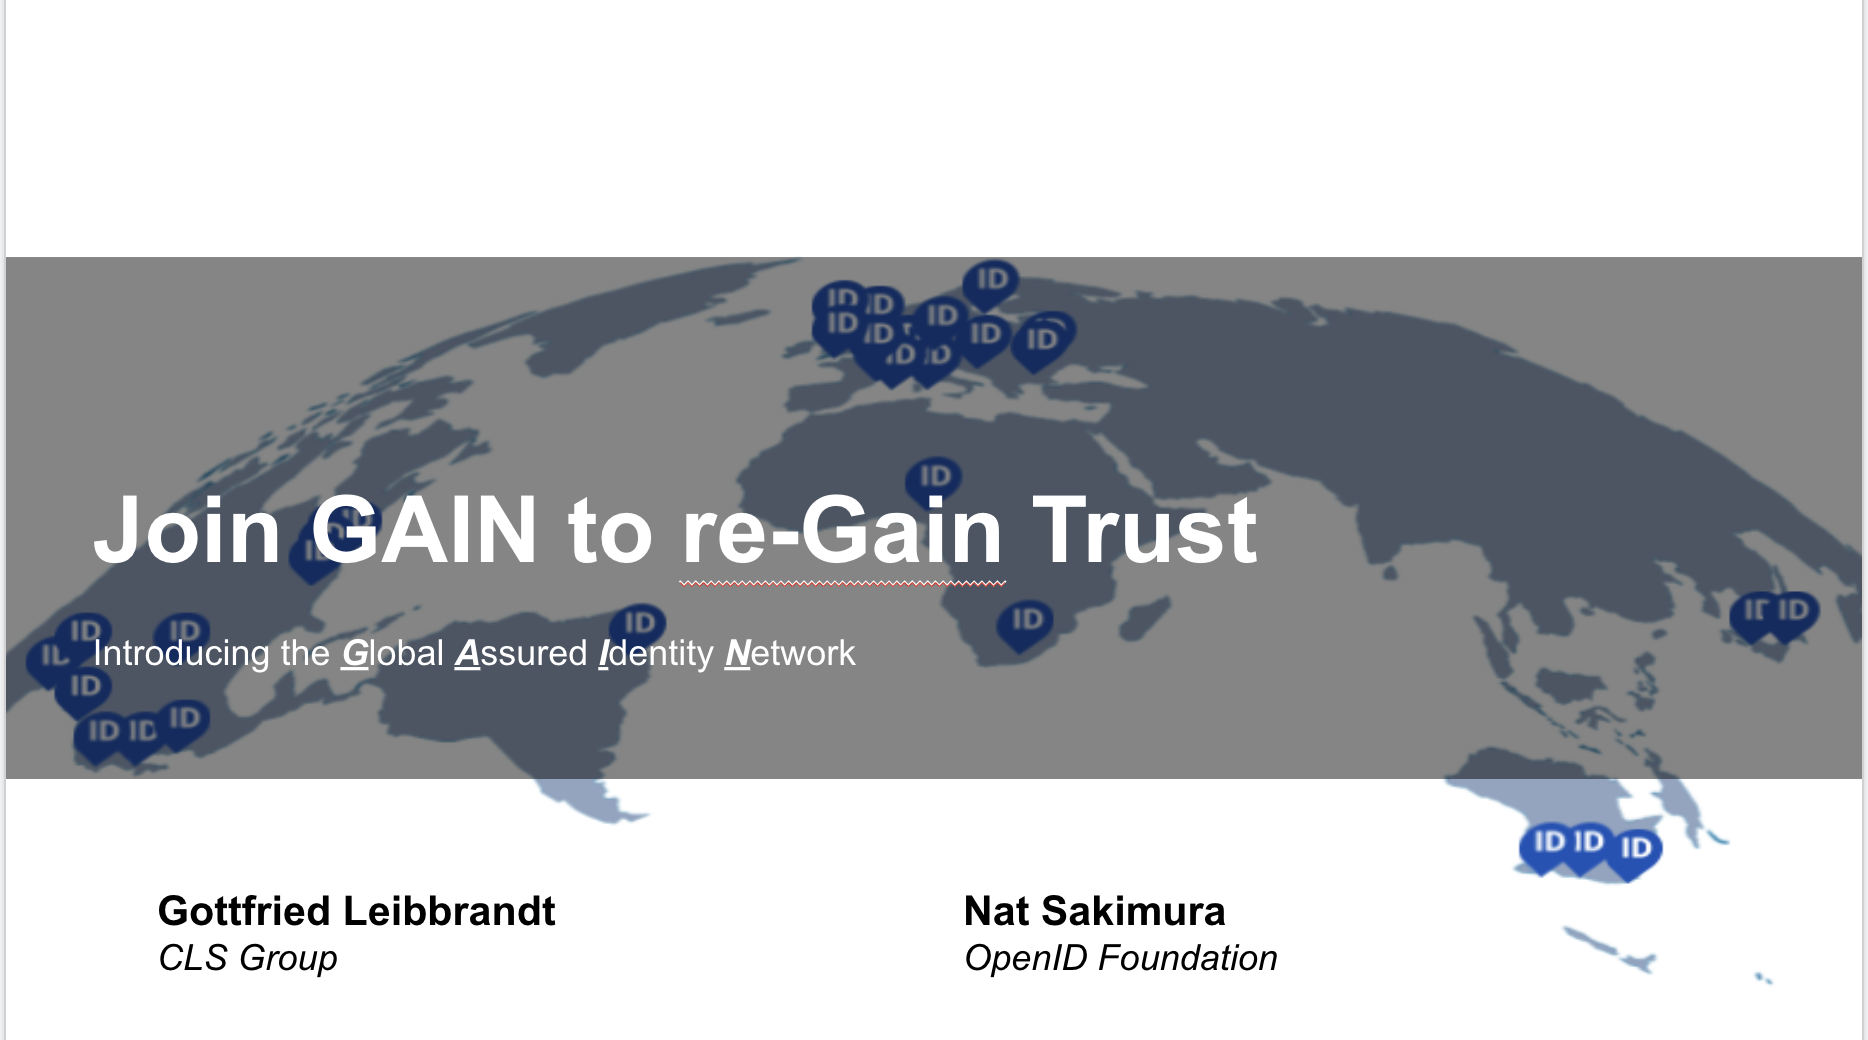 Join GAIN to re-GAIN Trust